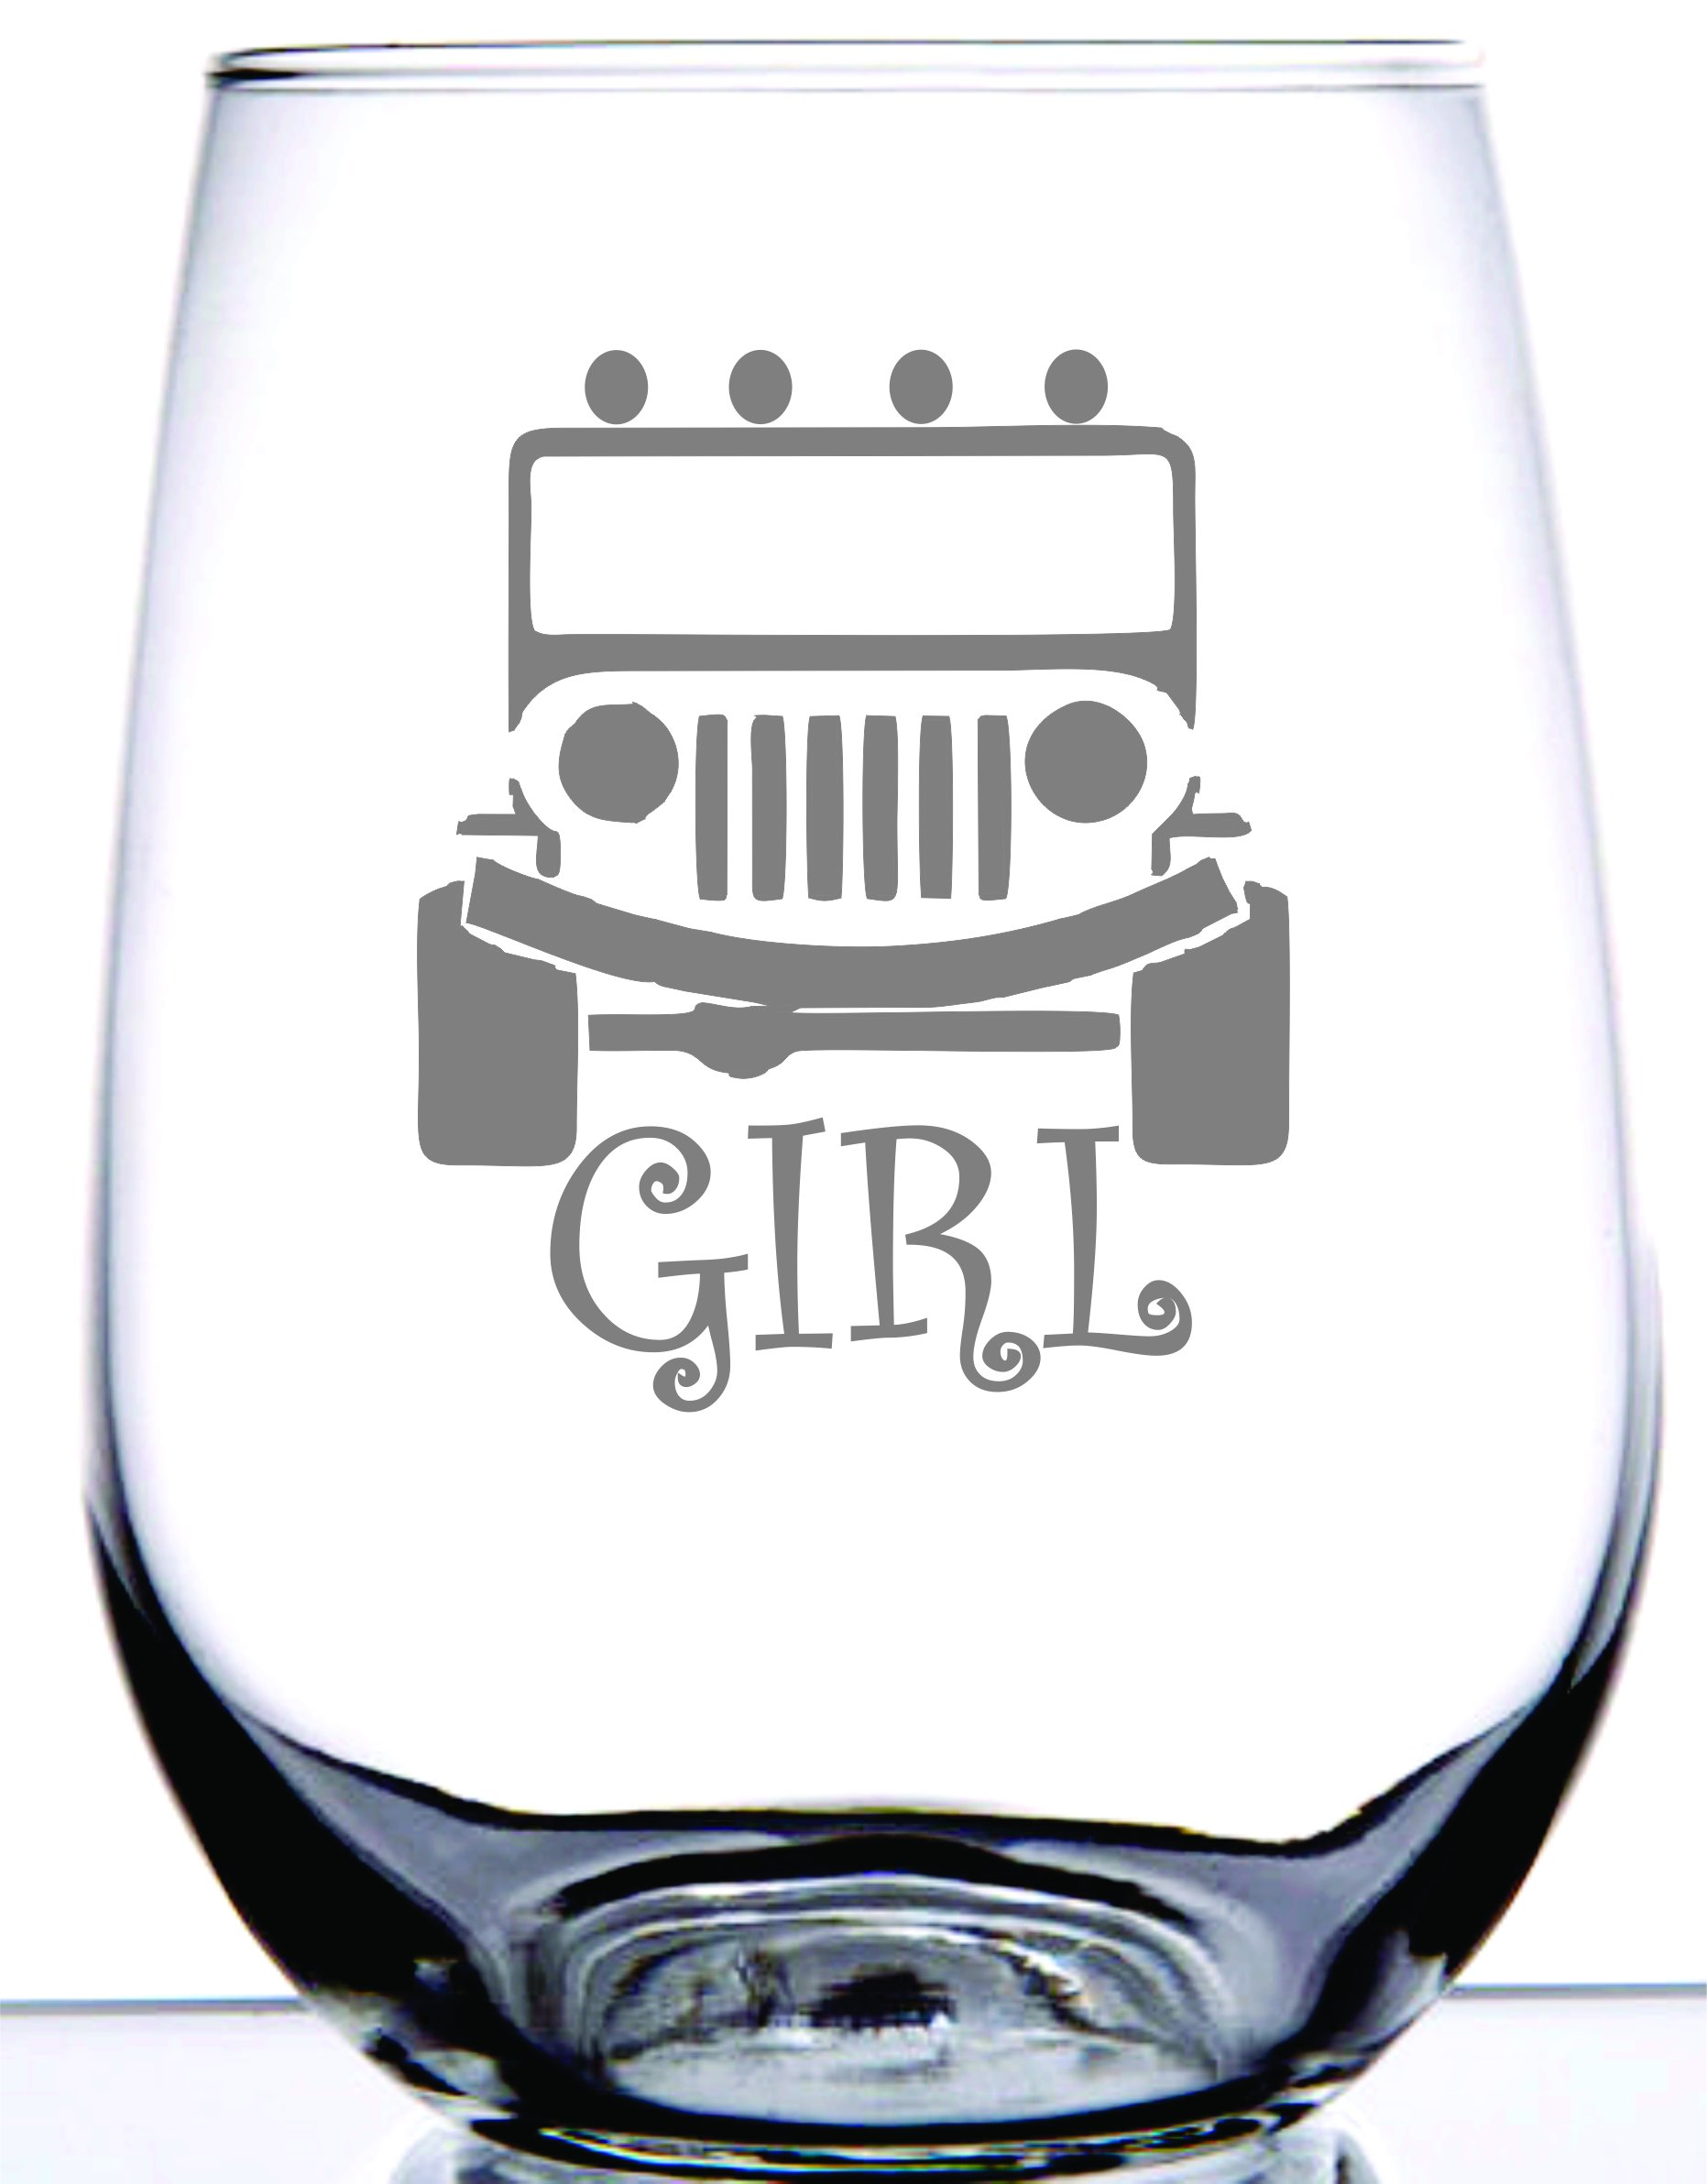 IE Laserware Girls Jeep Too! Laser Etched Engraved Wine Glass, 17 Ounce Stemless Wine Glass For Jeep Lovers